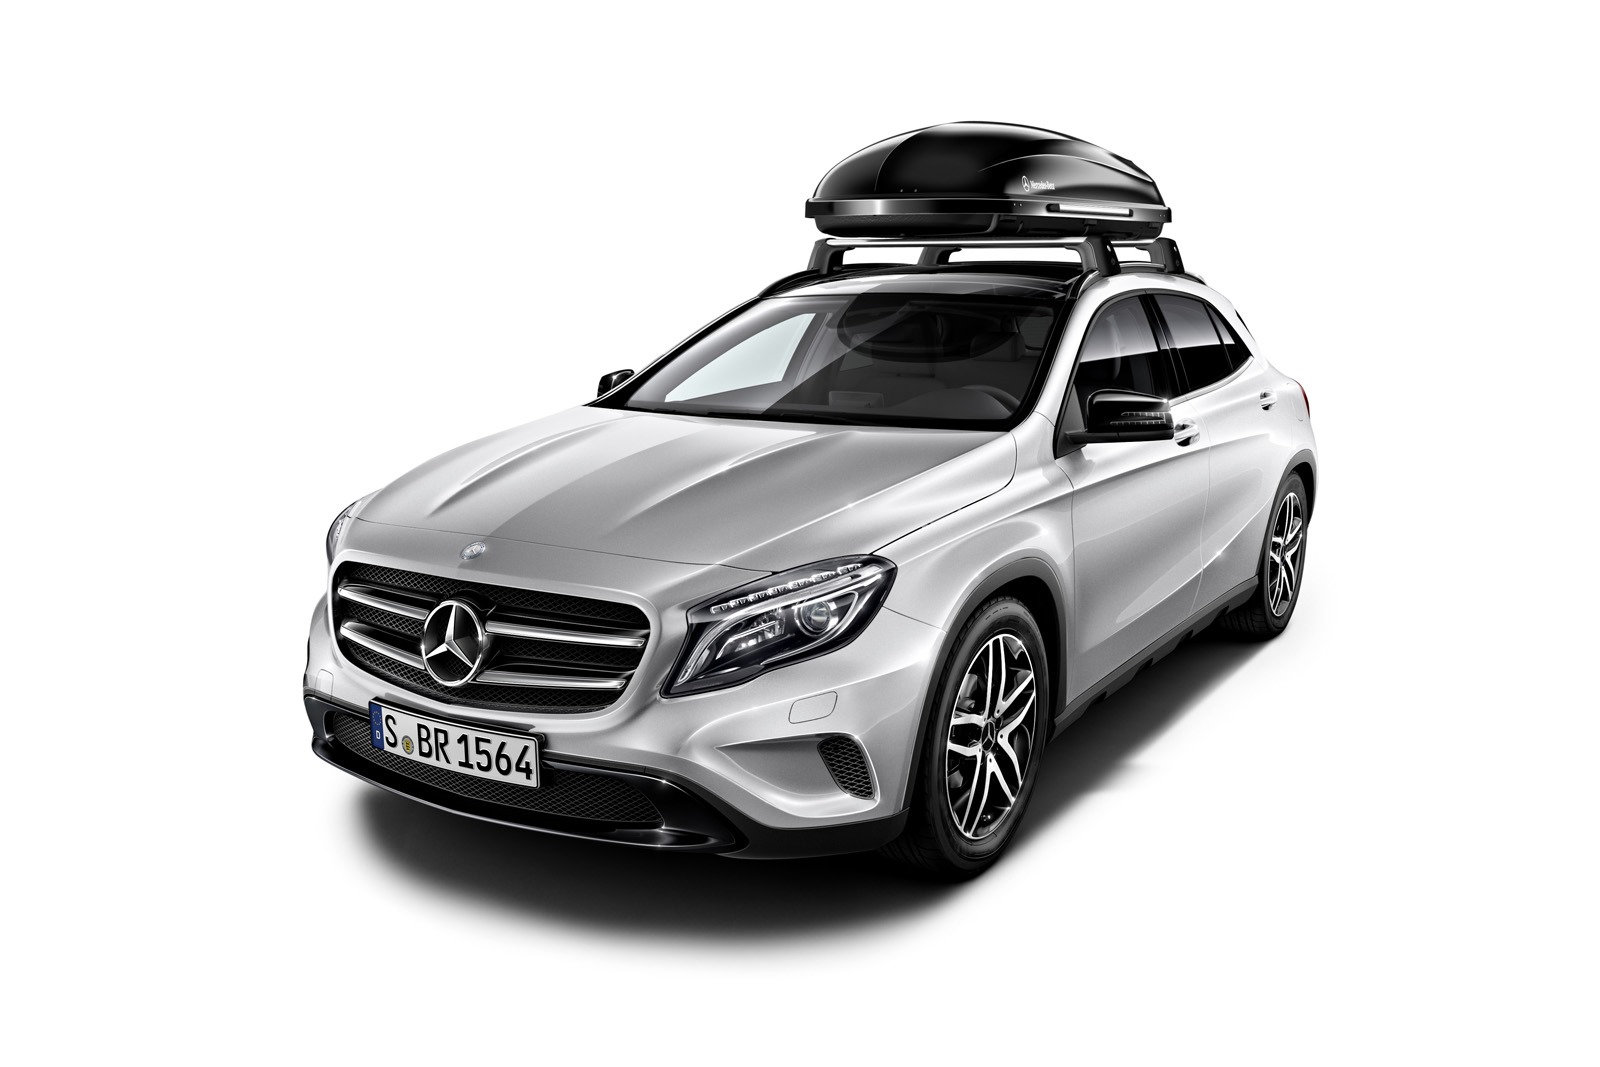 Mercedes Benz Designs A Range Of Accesories For The Gla Autoevolution